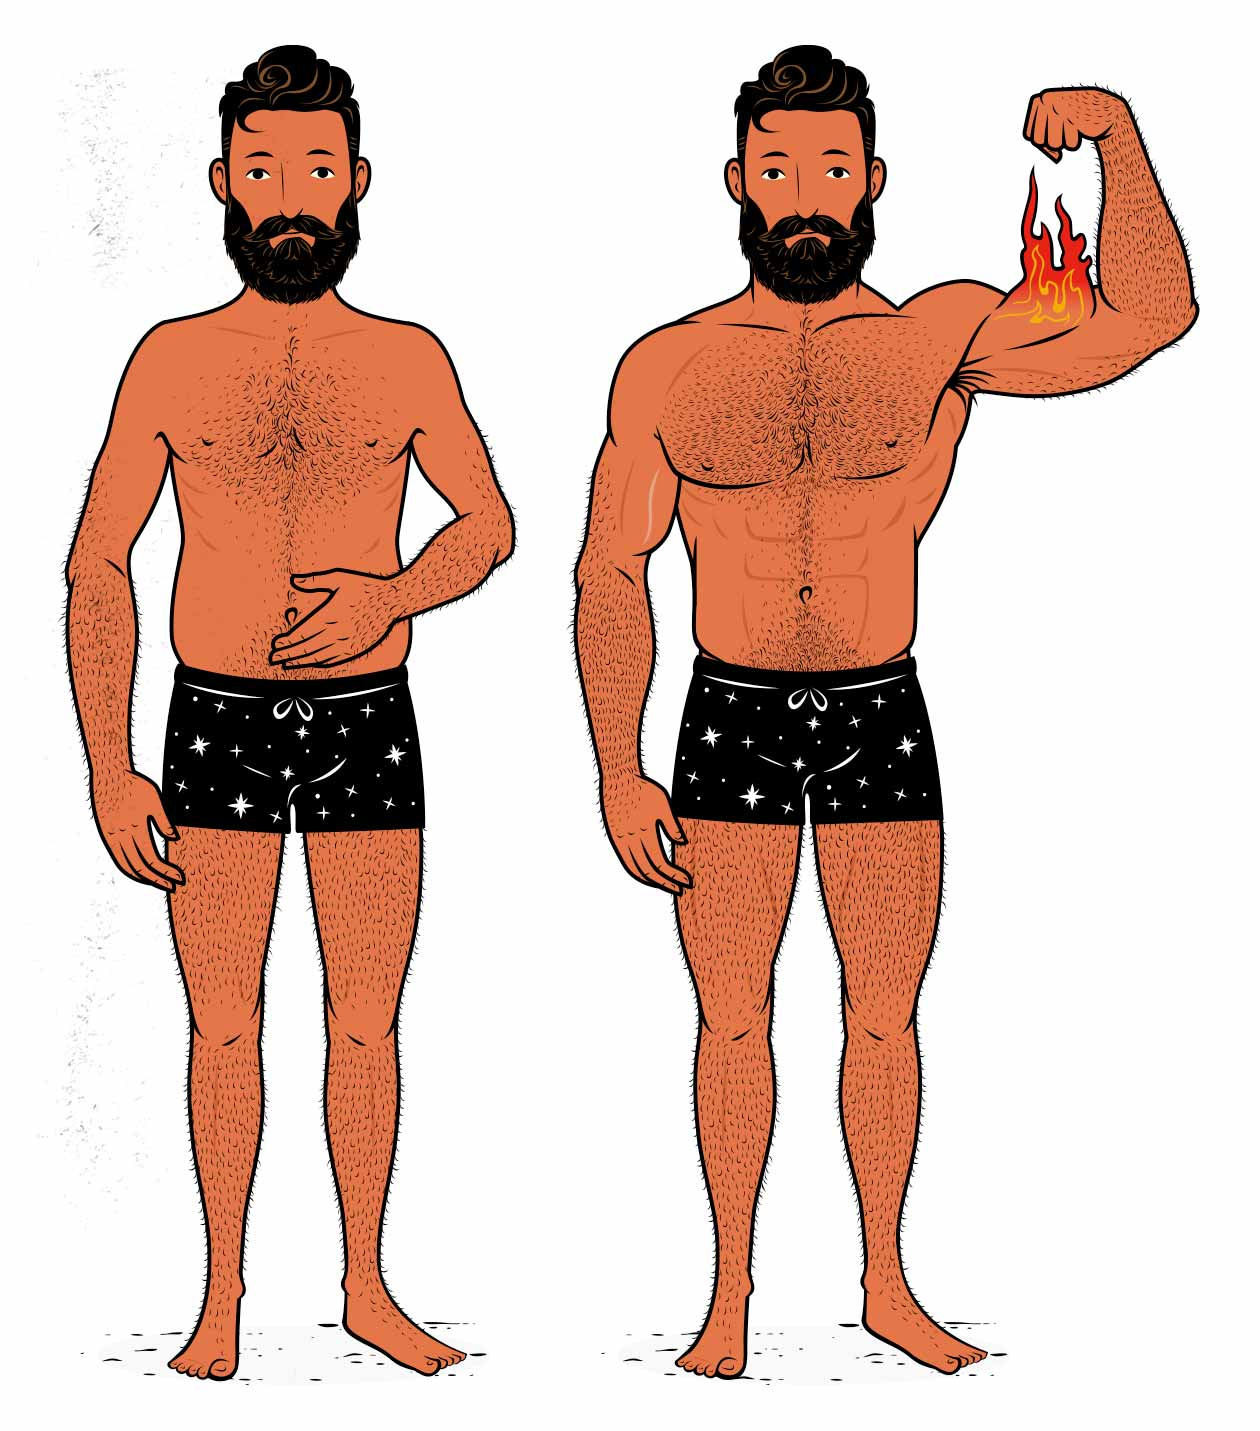 Illustration showing the results from training with a 4-day workout split to gain muscle mass.